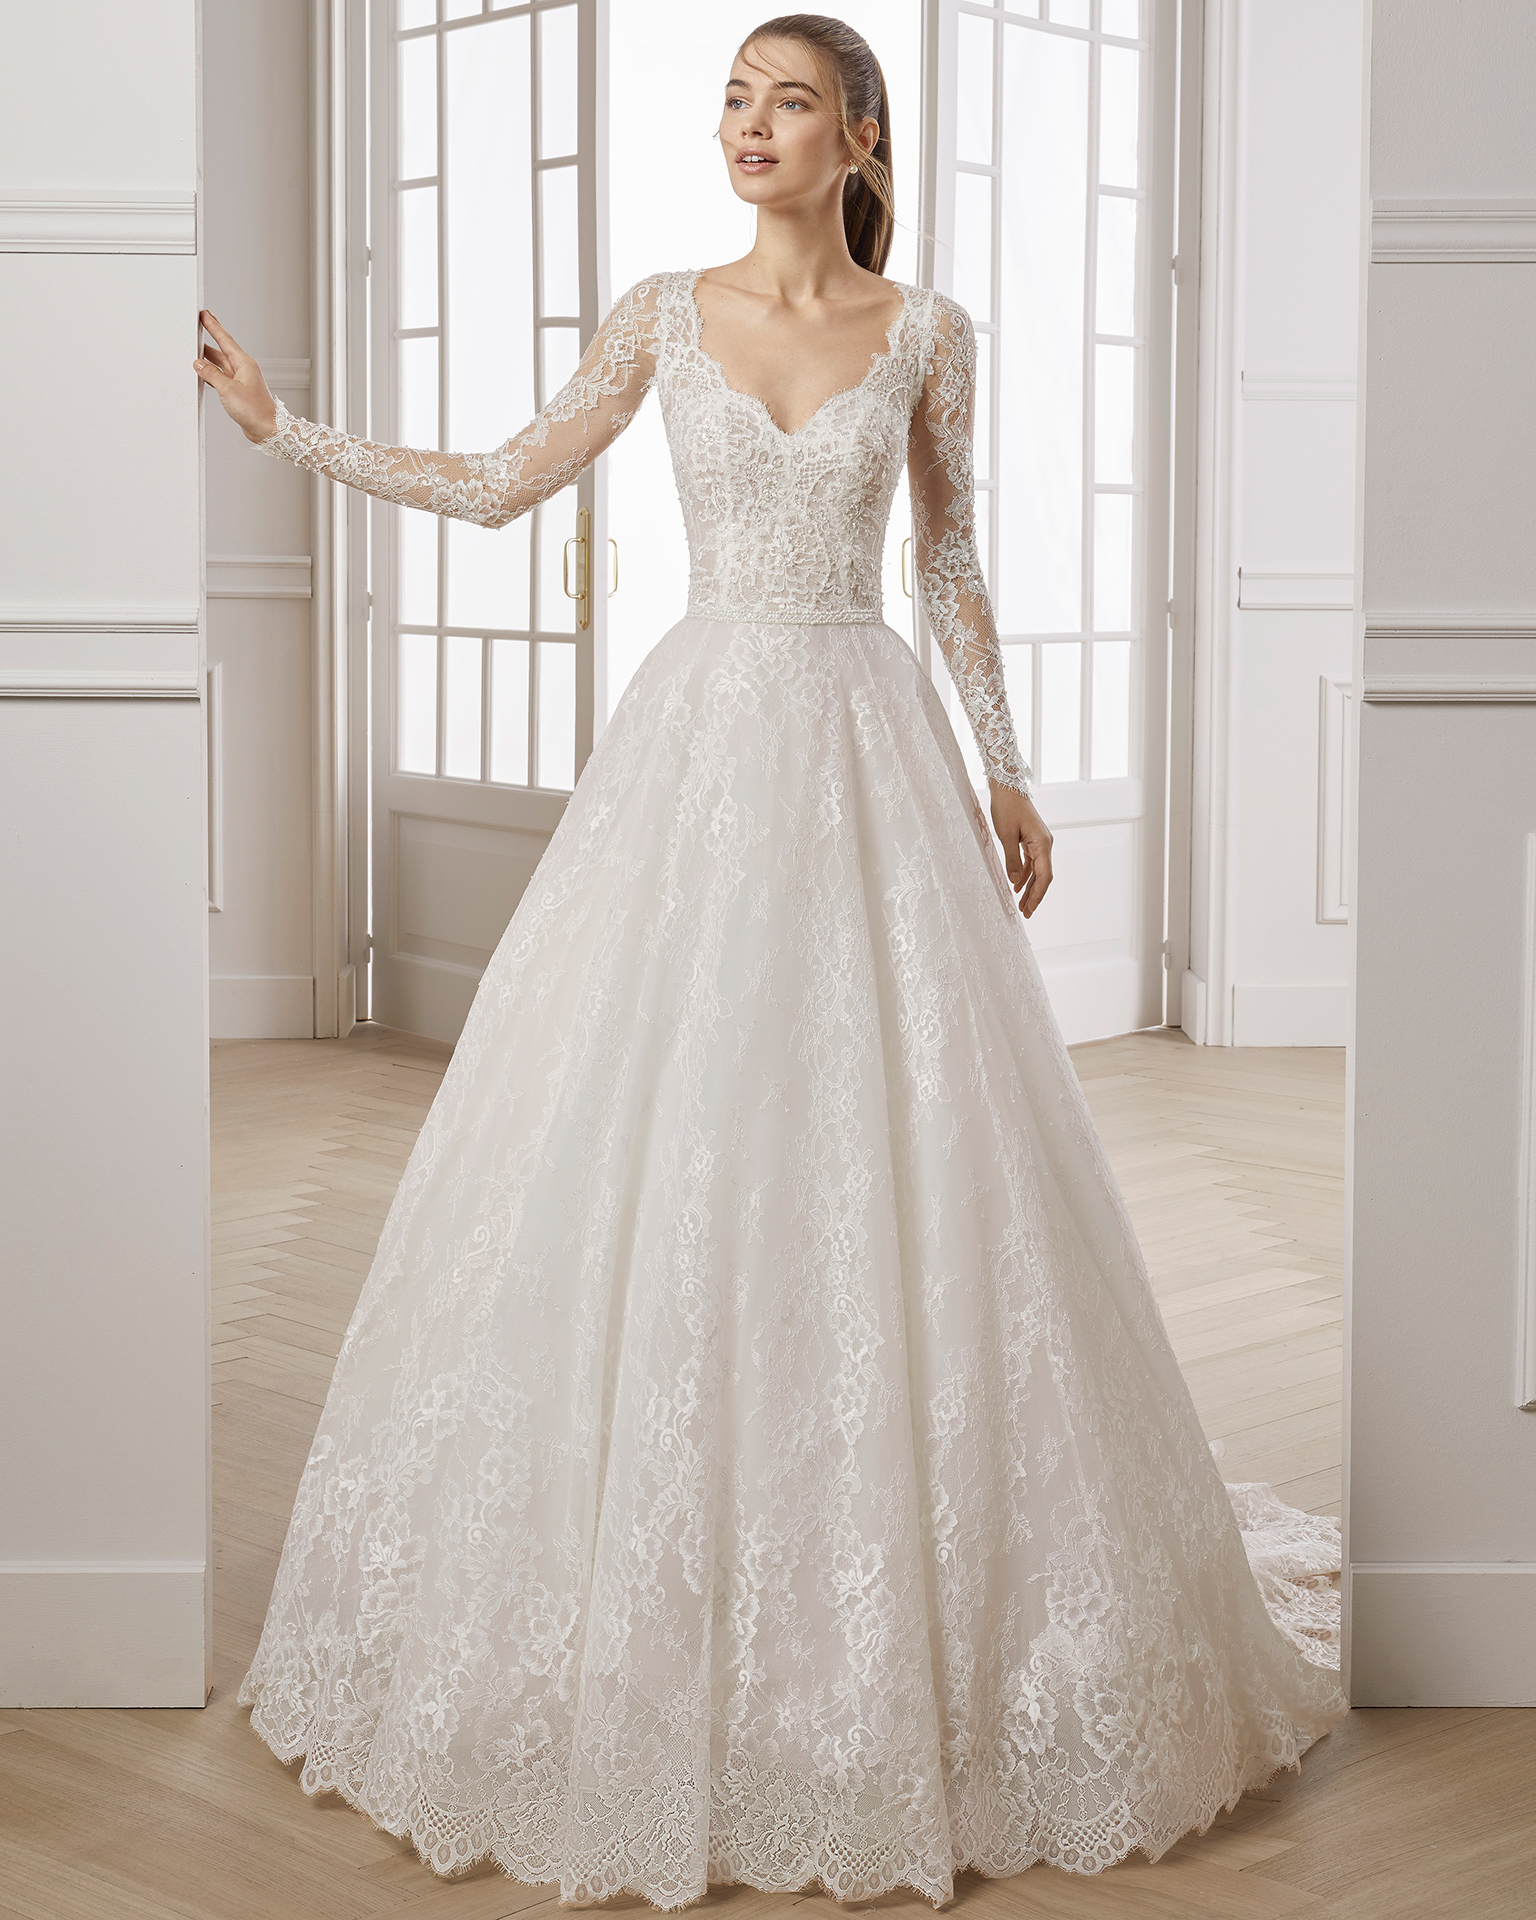 Eric Bridal 2019 Aire Barcelona Collection